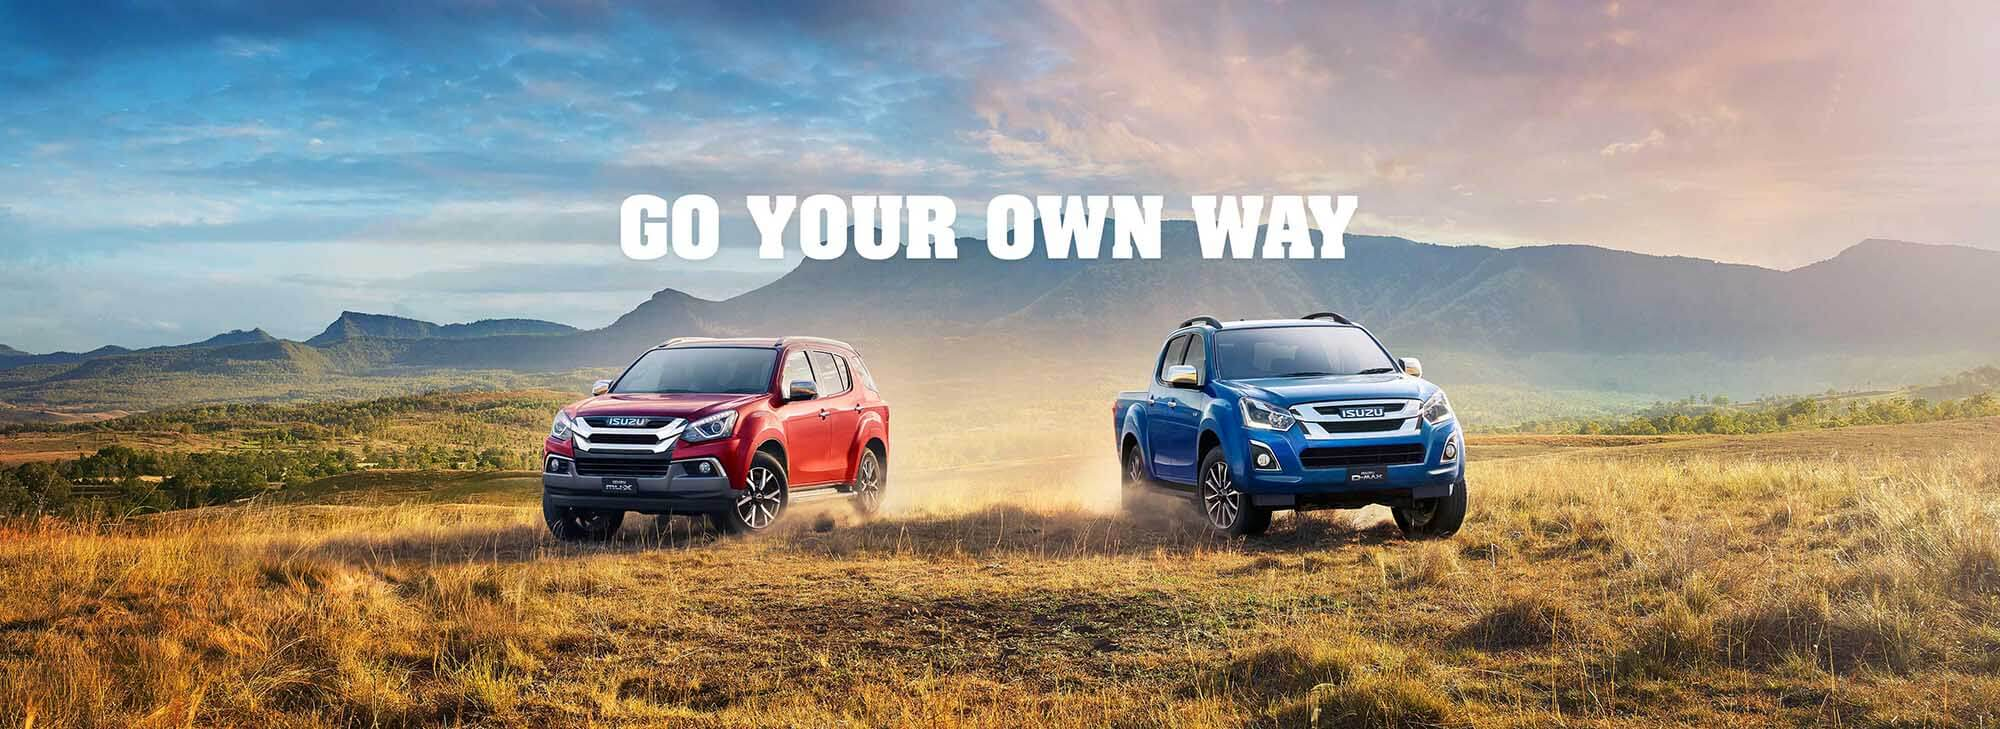 Isuzu UTE - Go Your Own Way